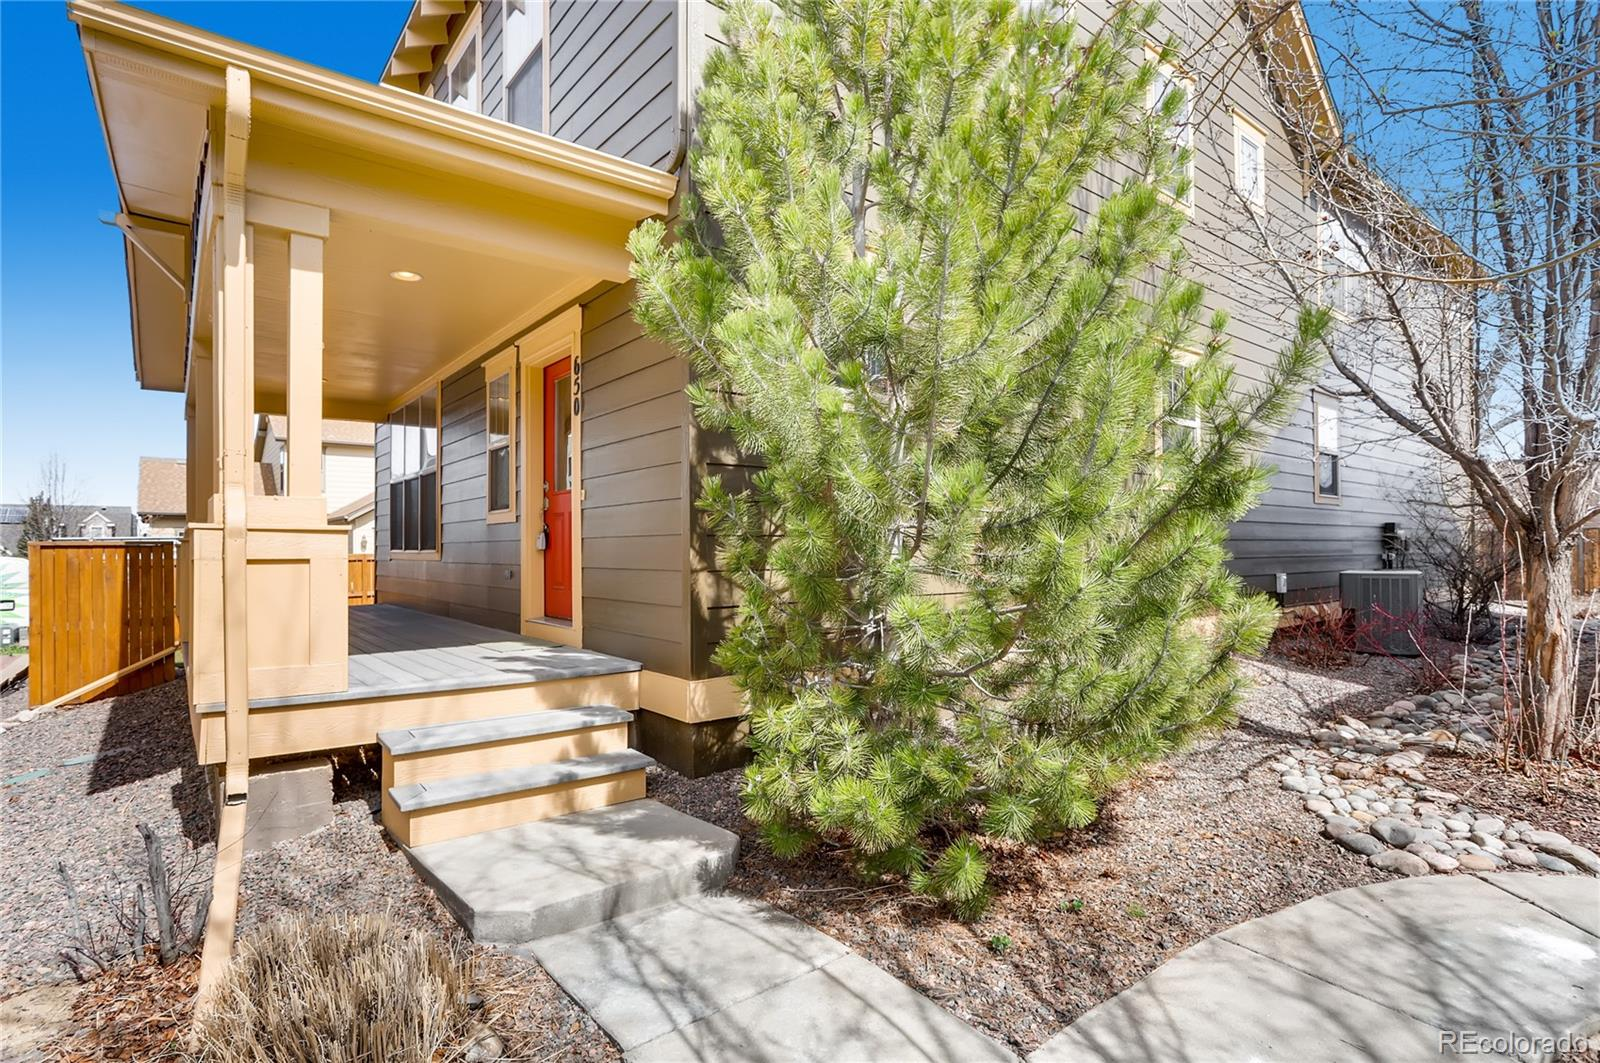 MLS# 3732250 - 1 - 650 Homestead Street, Lafayette, CO 80026